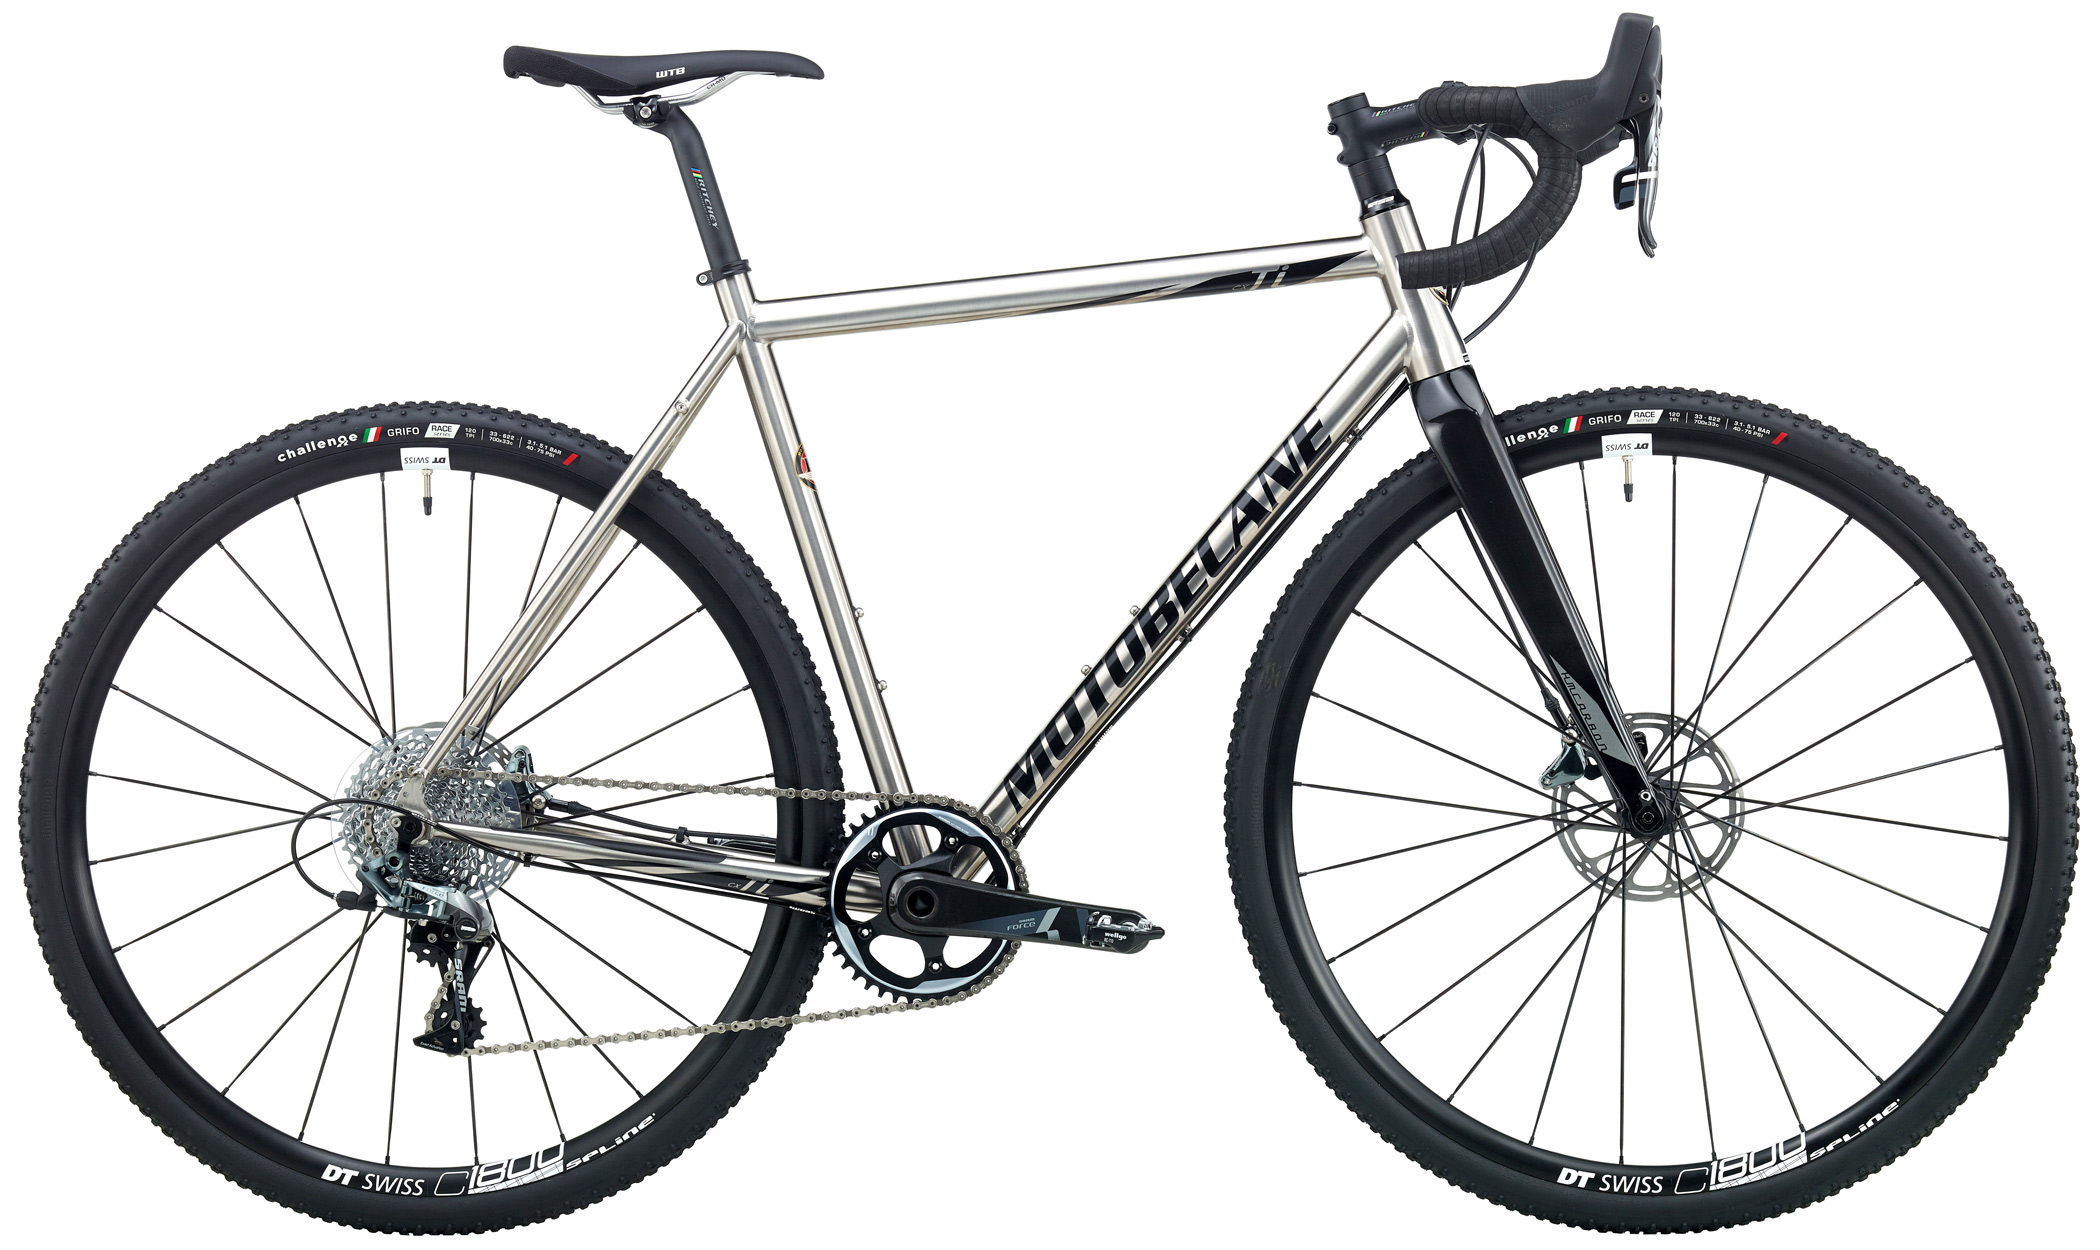 Bikes Motobecane Whipshot Ti Sram Force 1 Equipped Disc Brake Road Bike Image